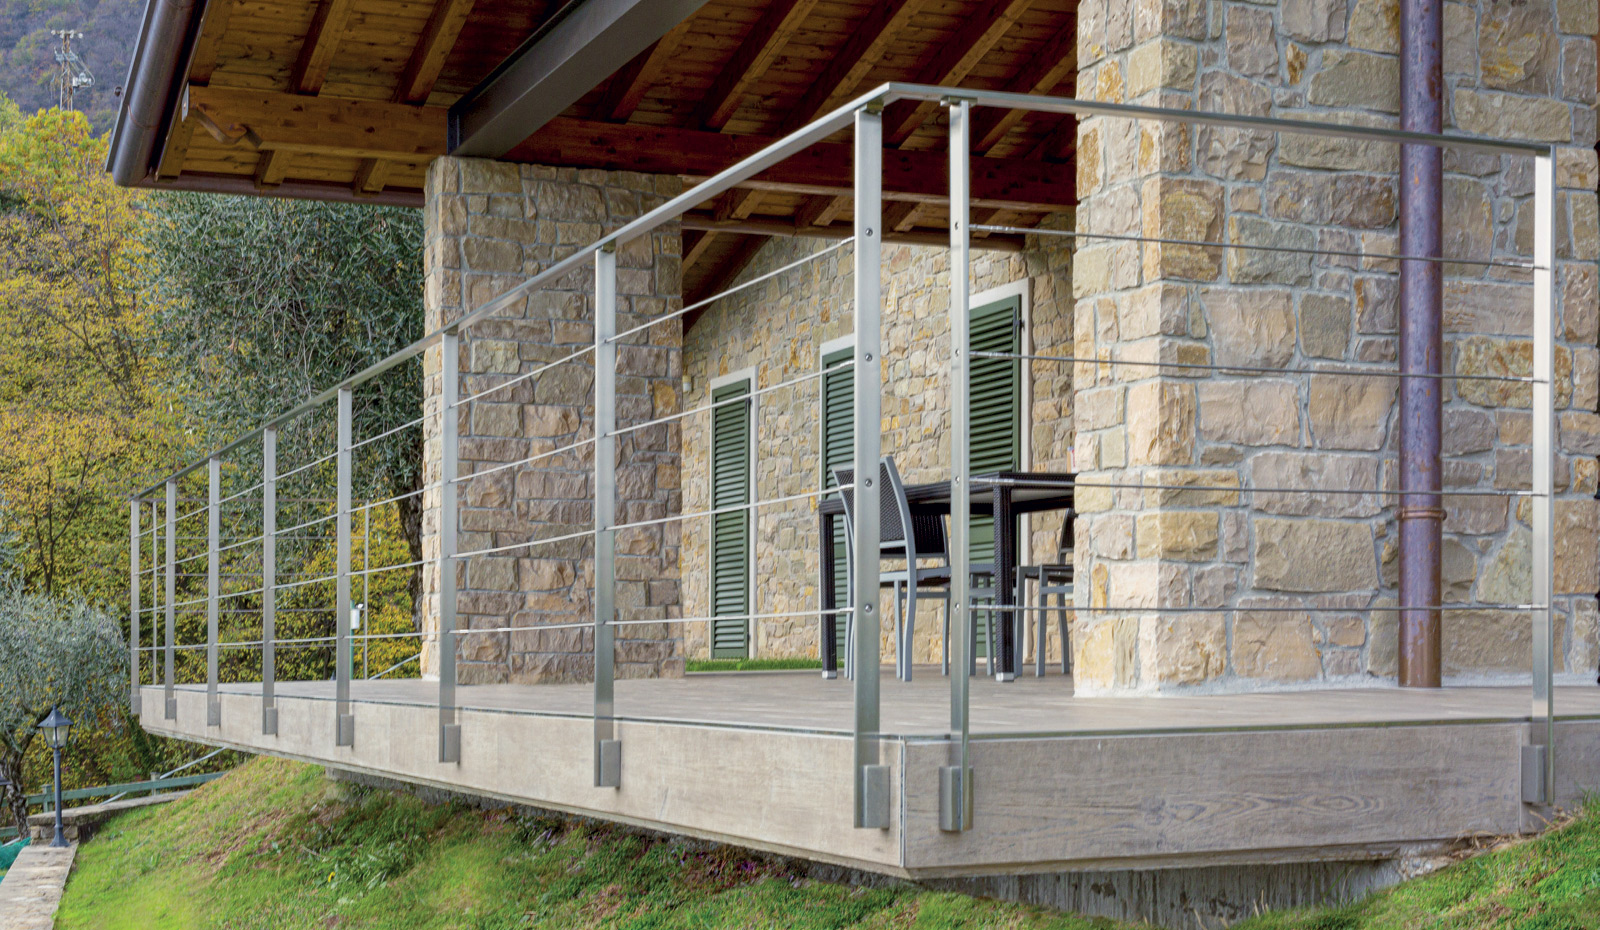 SIENA - Stainless Steel Railing with 40x12 mm Flat Baluster